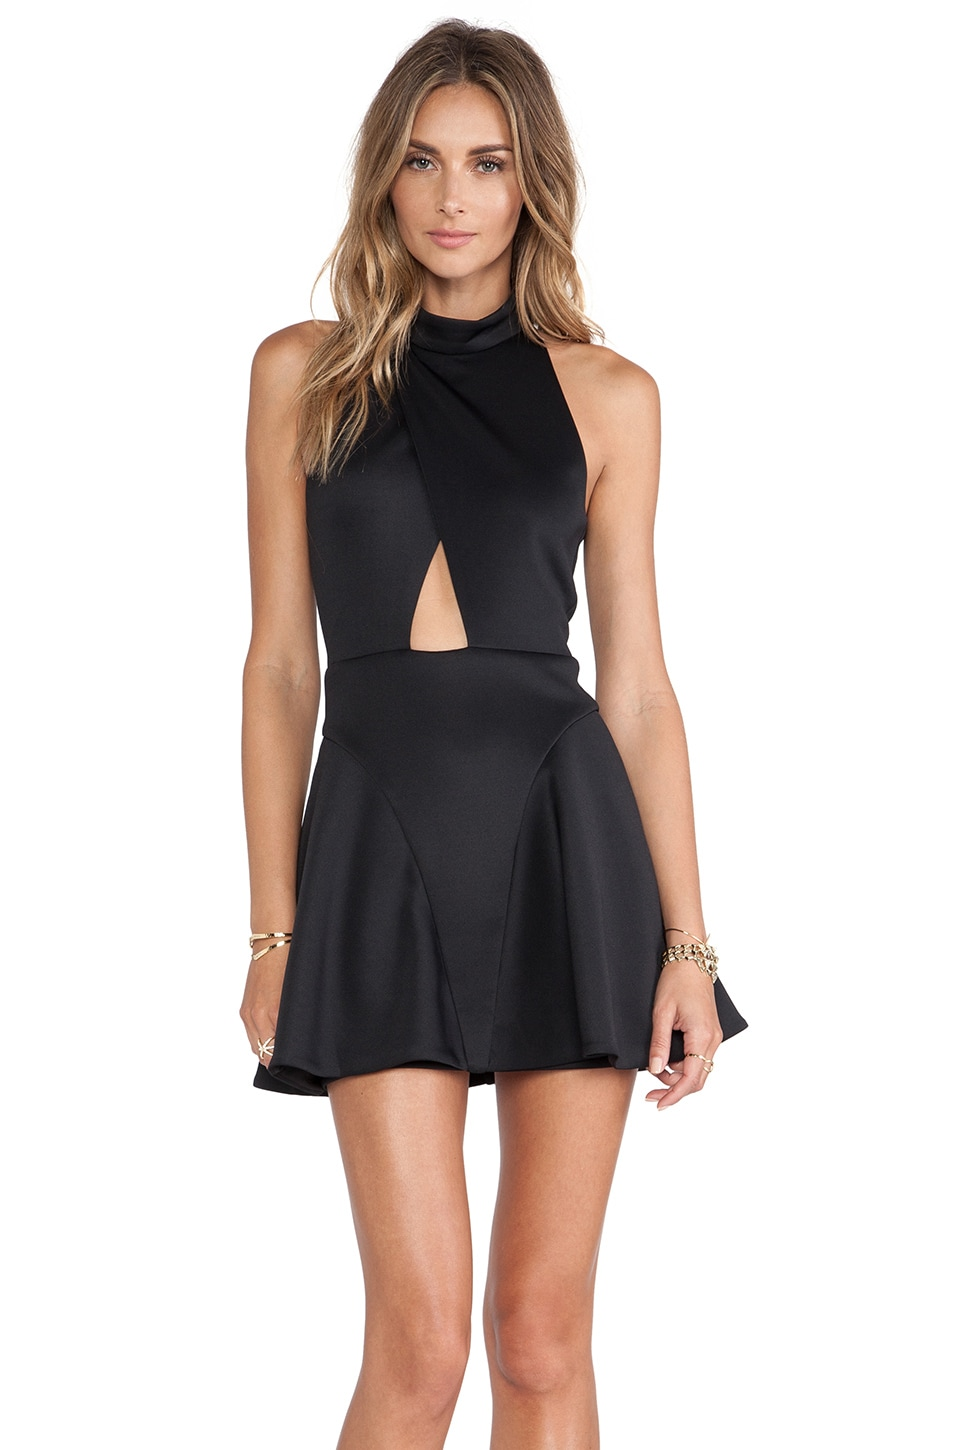 NBD Cocktail Fit & Flare Dress in Black from Revolve.com